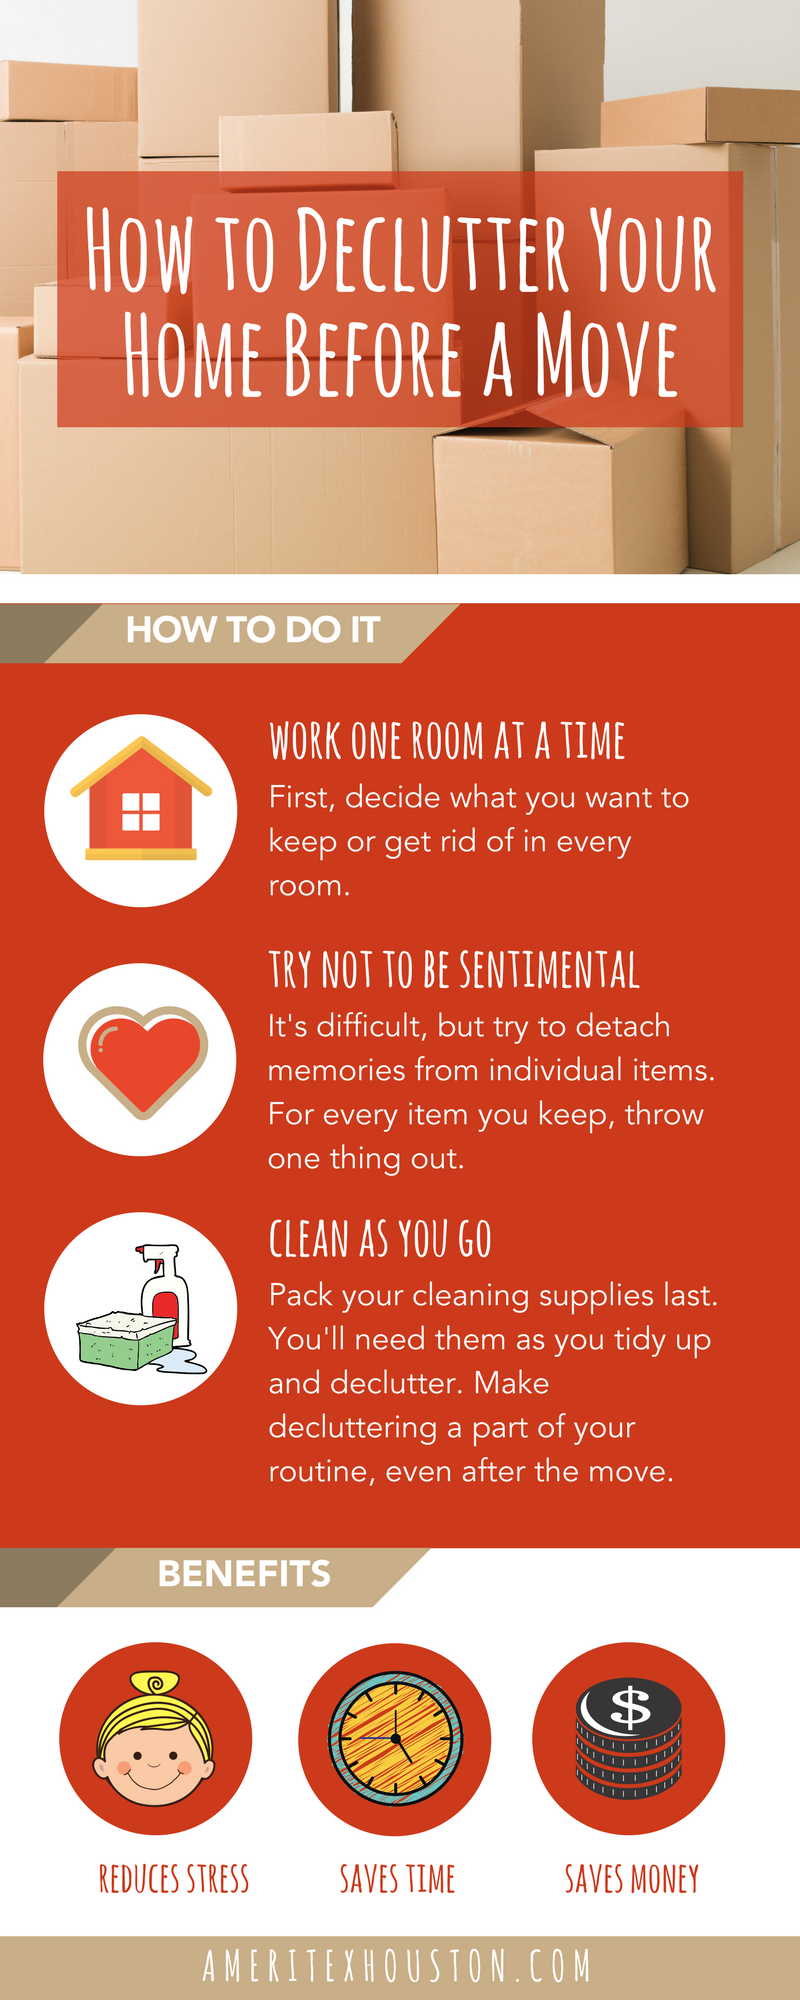 how to declutter before a move infographic